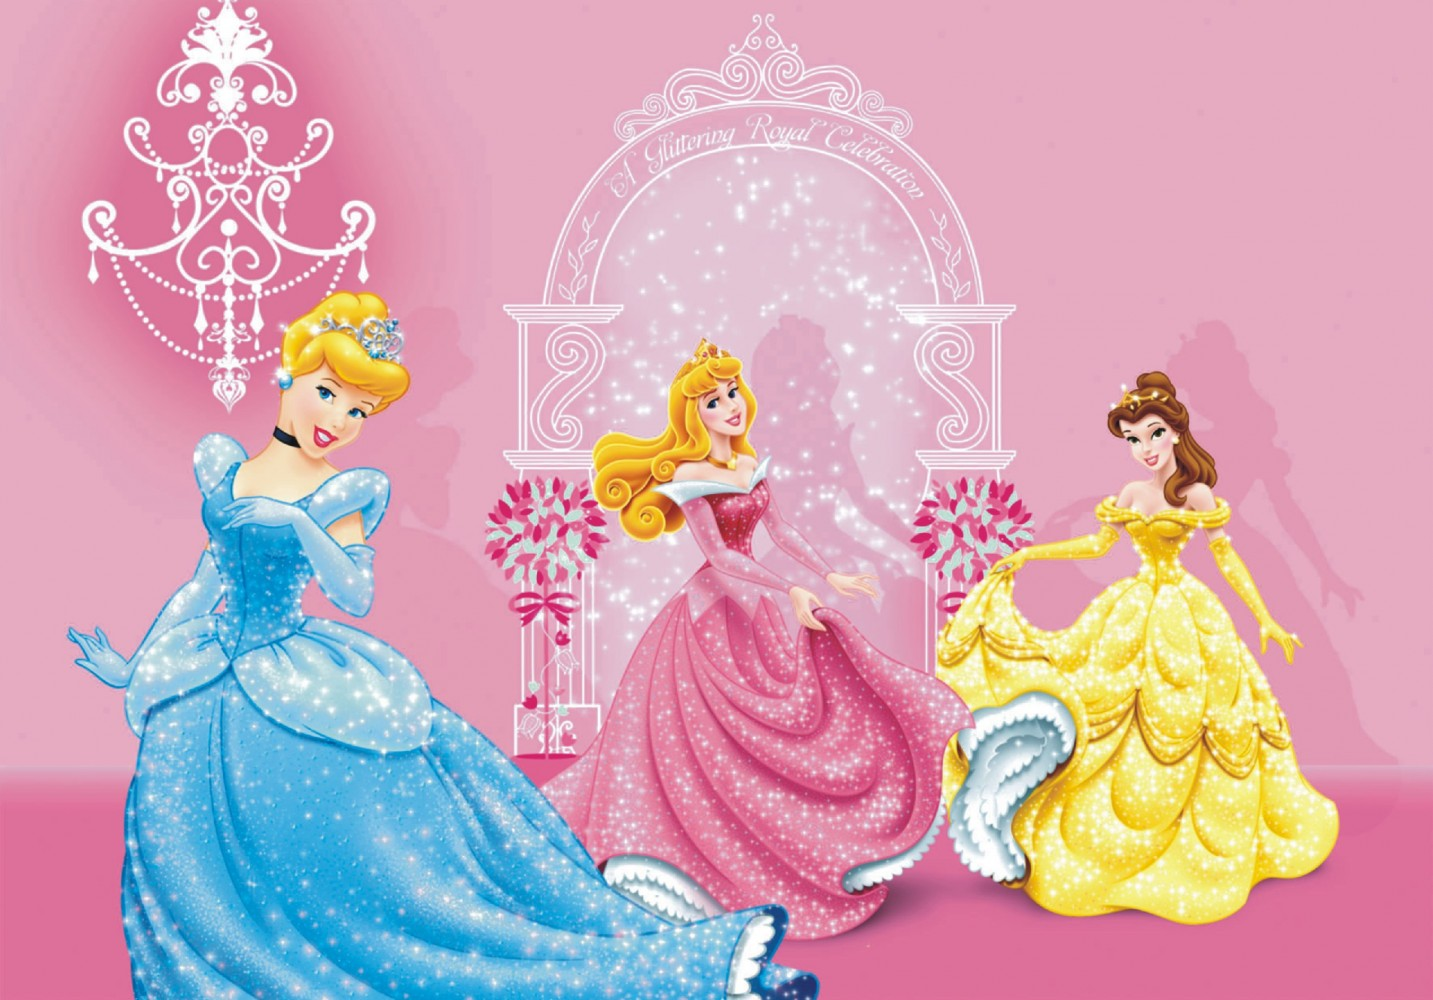 Xxl poster wall mural wallpaper disney princess rose photo for Disney princess wallpaper mural